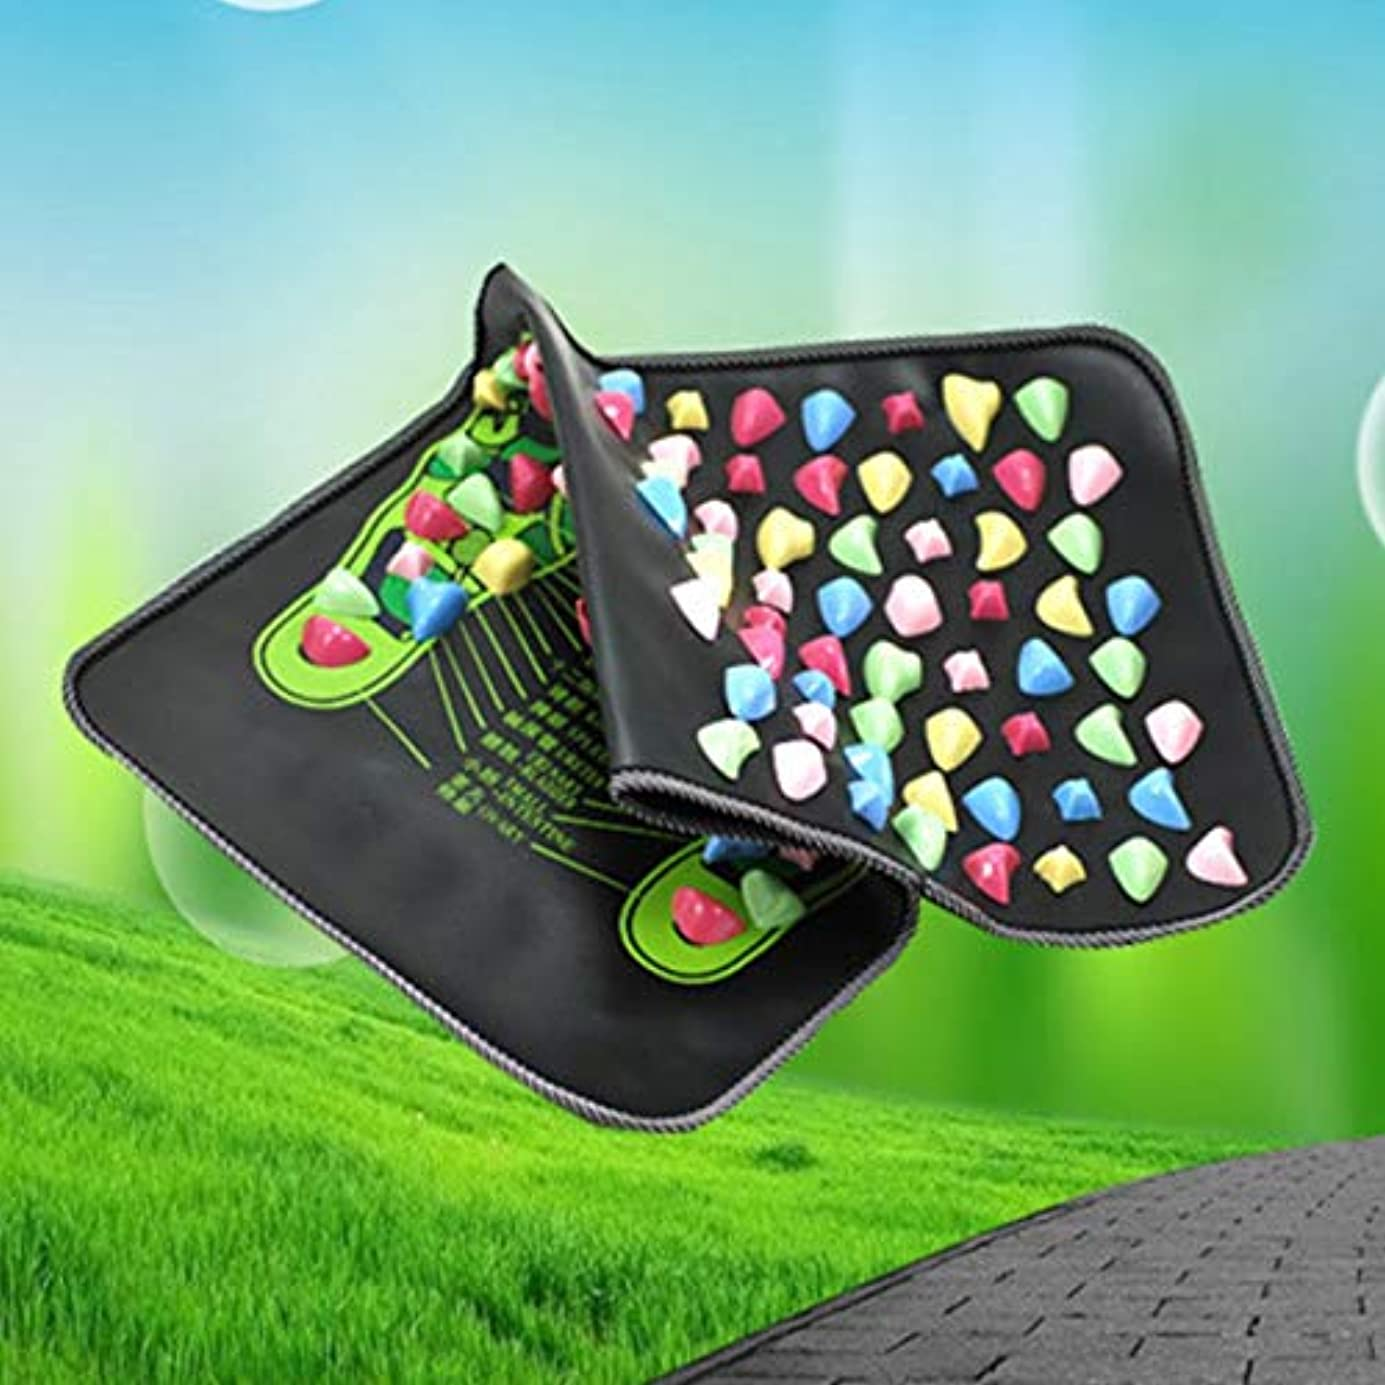 スキー不要漏斗Reflexology Walk Stone Foot Leg Pain Relieve Relief Walk Massager Mat Health Care Acupressure Mat Pad massageador